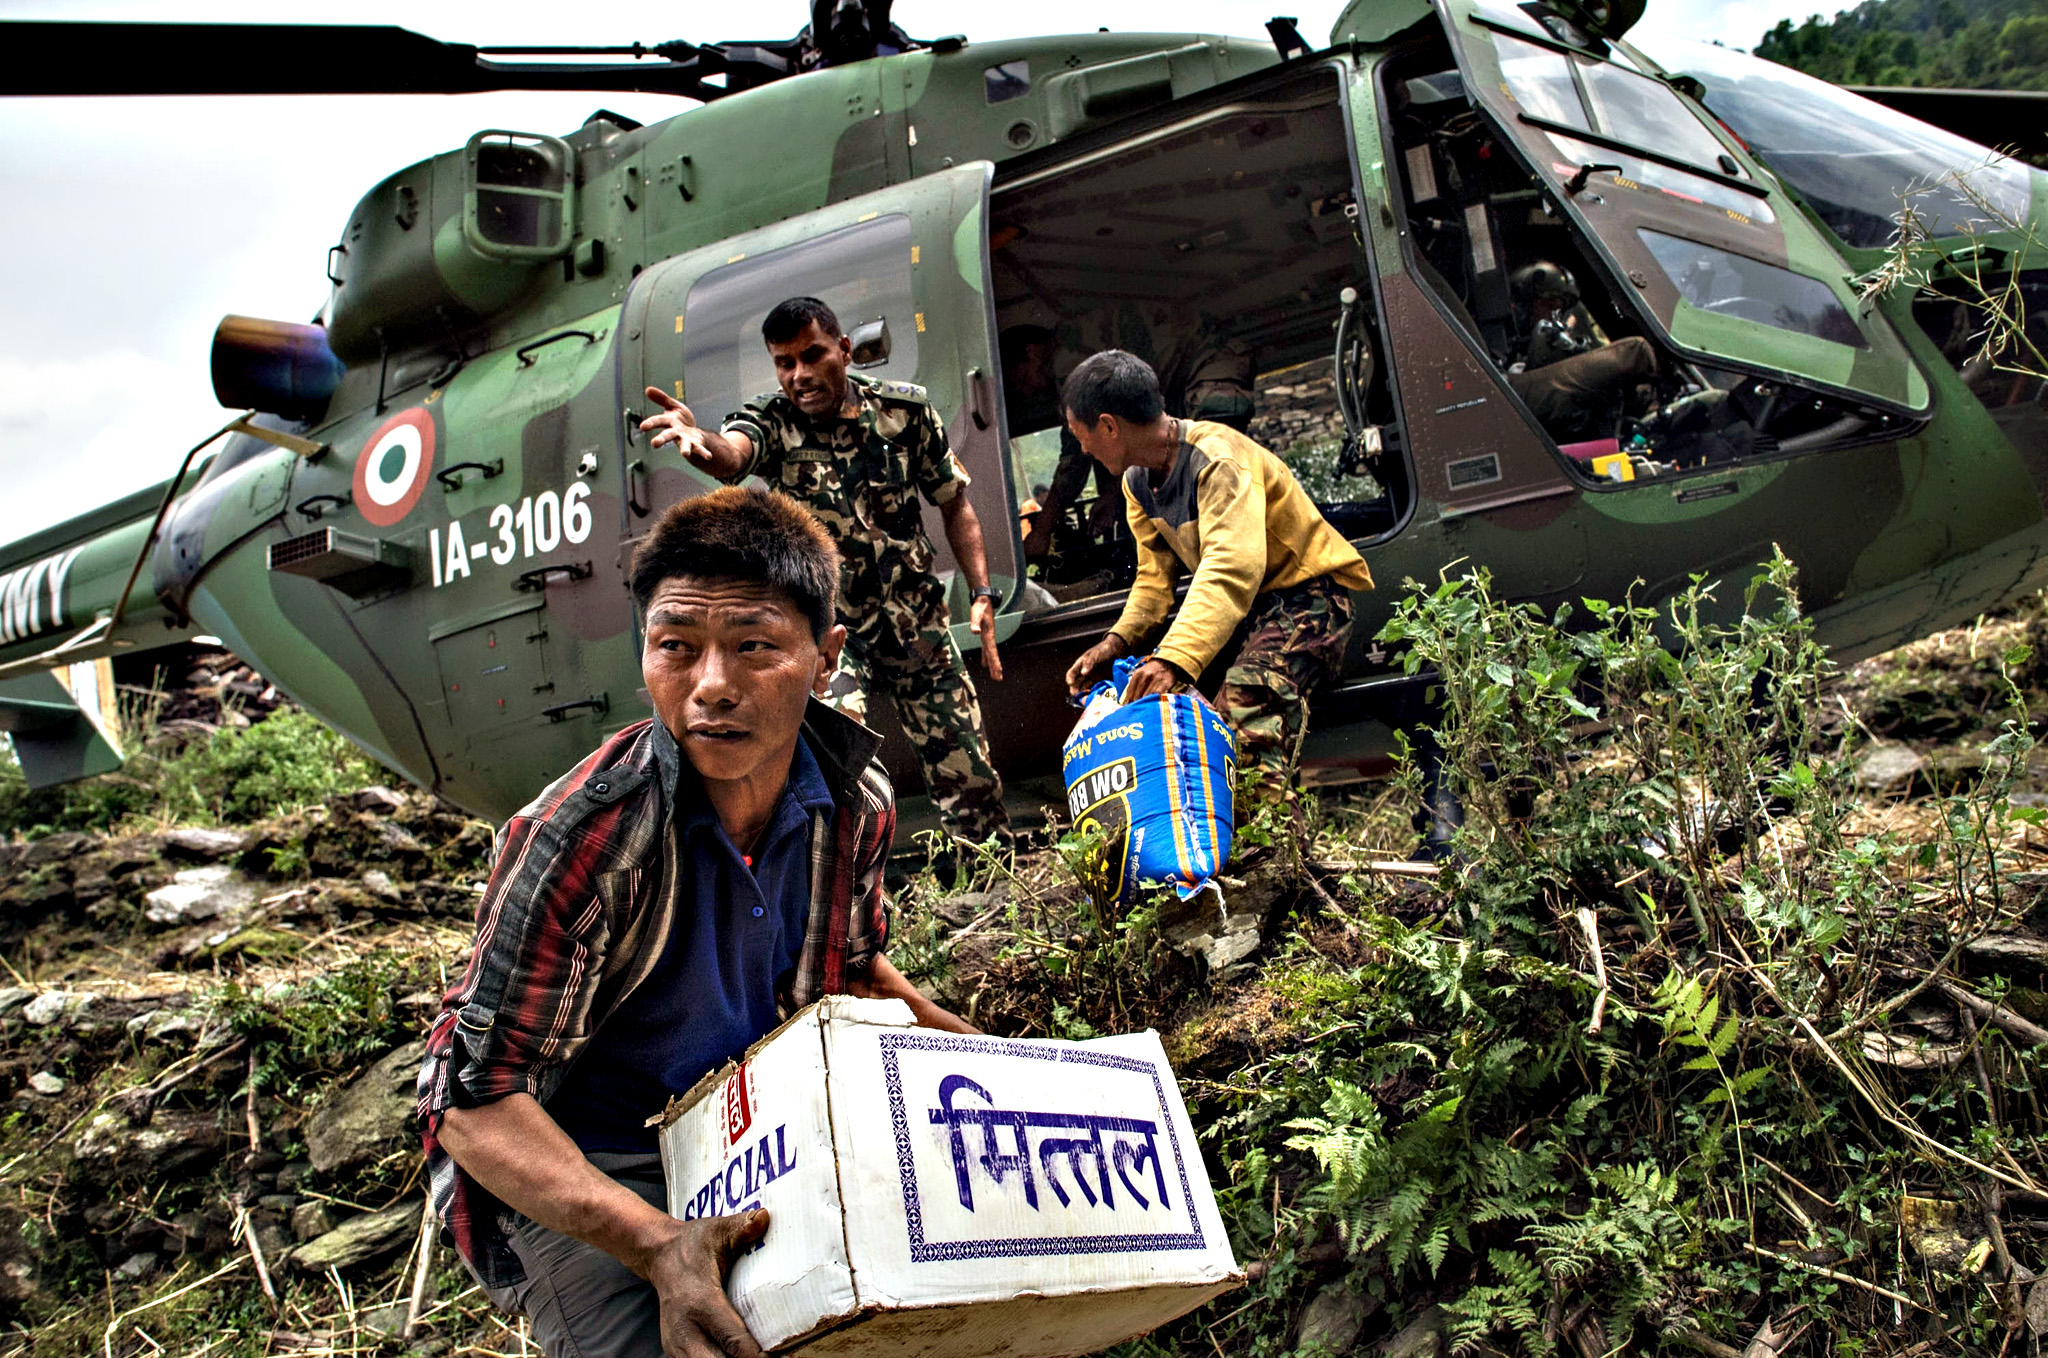 Nepalese villagers collect aid dropped by an Indian helicopter on Wednesday in Hulchuk, Nepal.  A major 7.9 earthquake hit Kathmandu mid-day on Saturday 25th April, and was followed by multiple aftershocks that triggered avalanches on Mt. Everest that buried mountain climbers in their base camps. Many houses, buildings and temples in the capital were destroyed during the earthquake, leaving over 7000 dead and many more trapped under the debris as emergency rescue workers attempt to clear debris and find survivors. Regular aftershocks have hampered recovery missions as locals, officials and aid workers attempt to recover bodies from the rubble